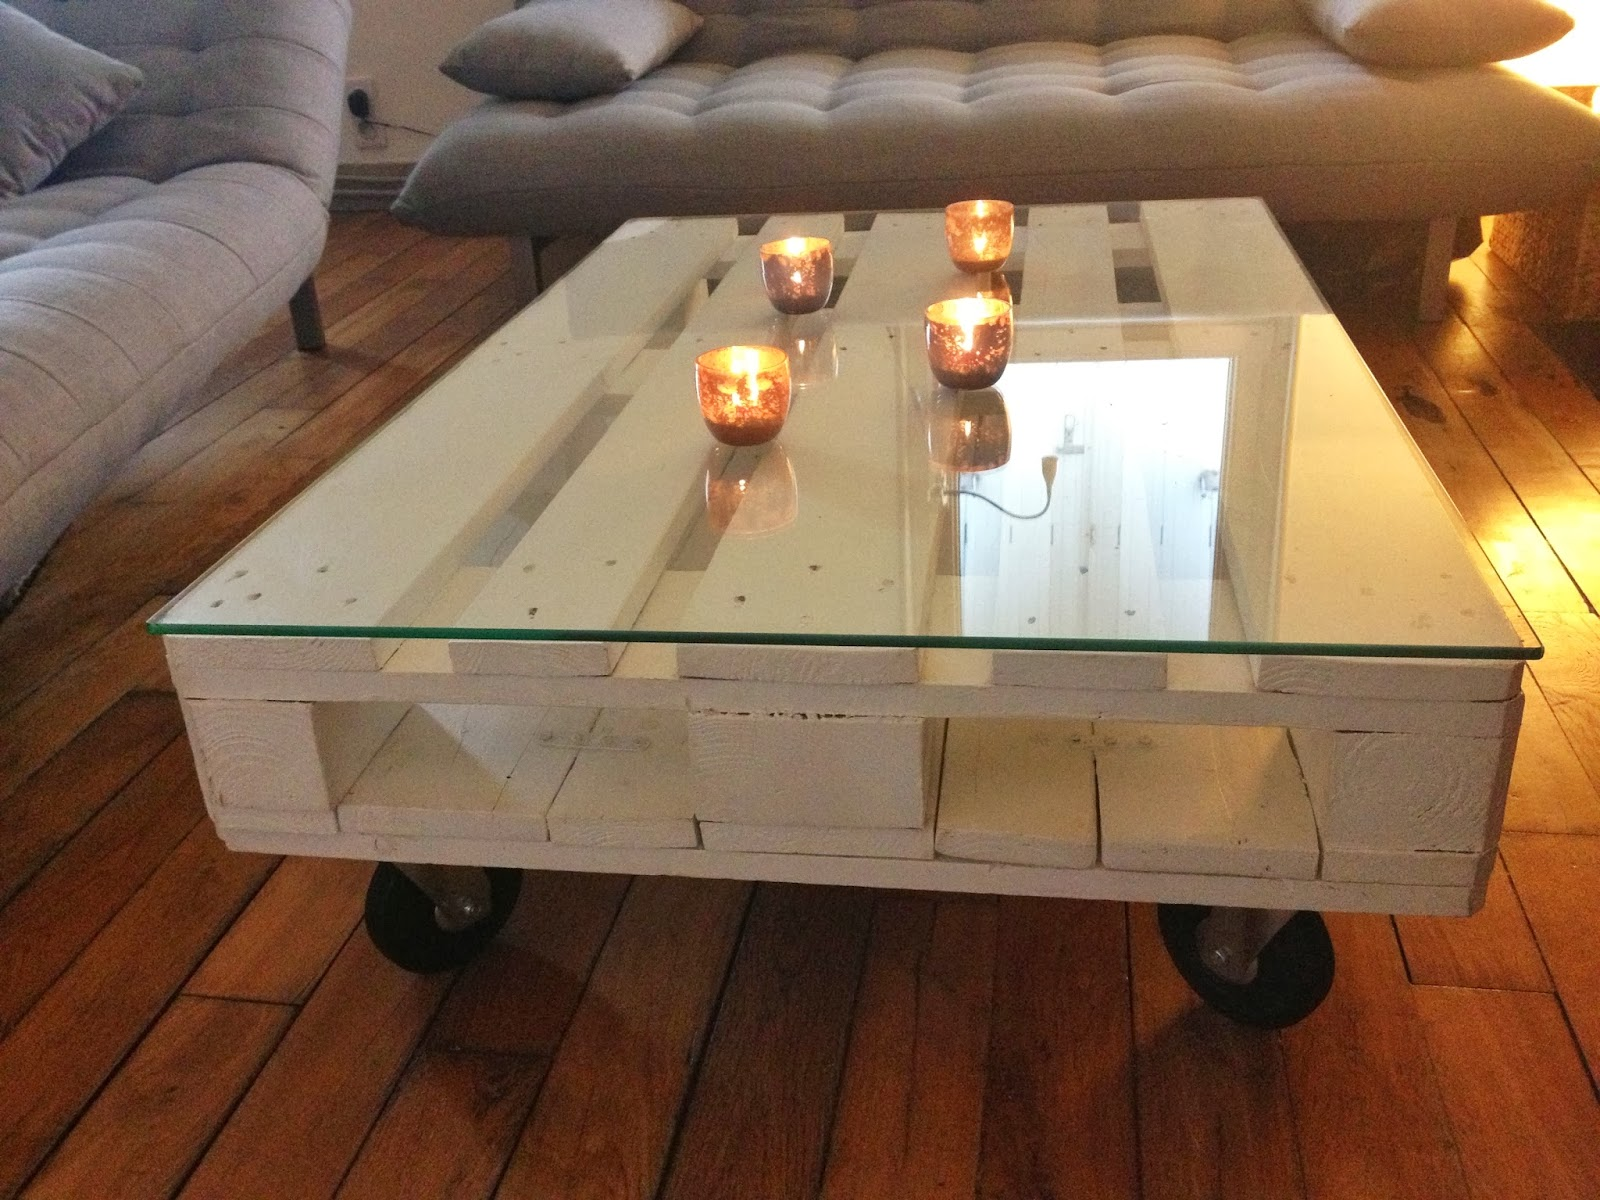 La clamartoise diy une table basse en palette - Comment transformer une palette en table basse ...